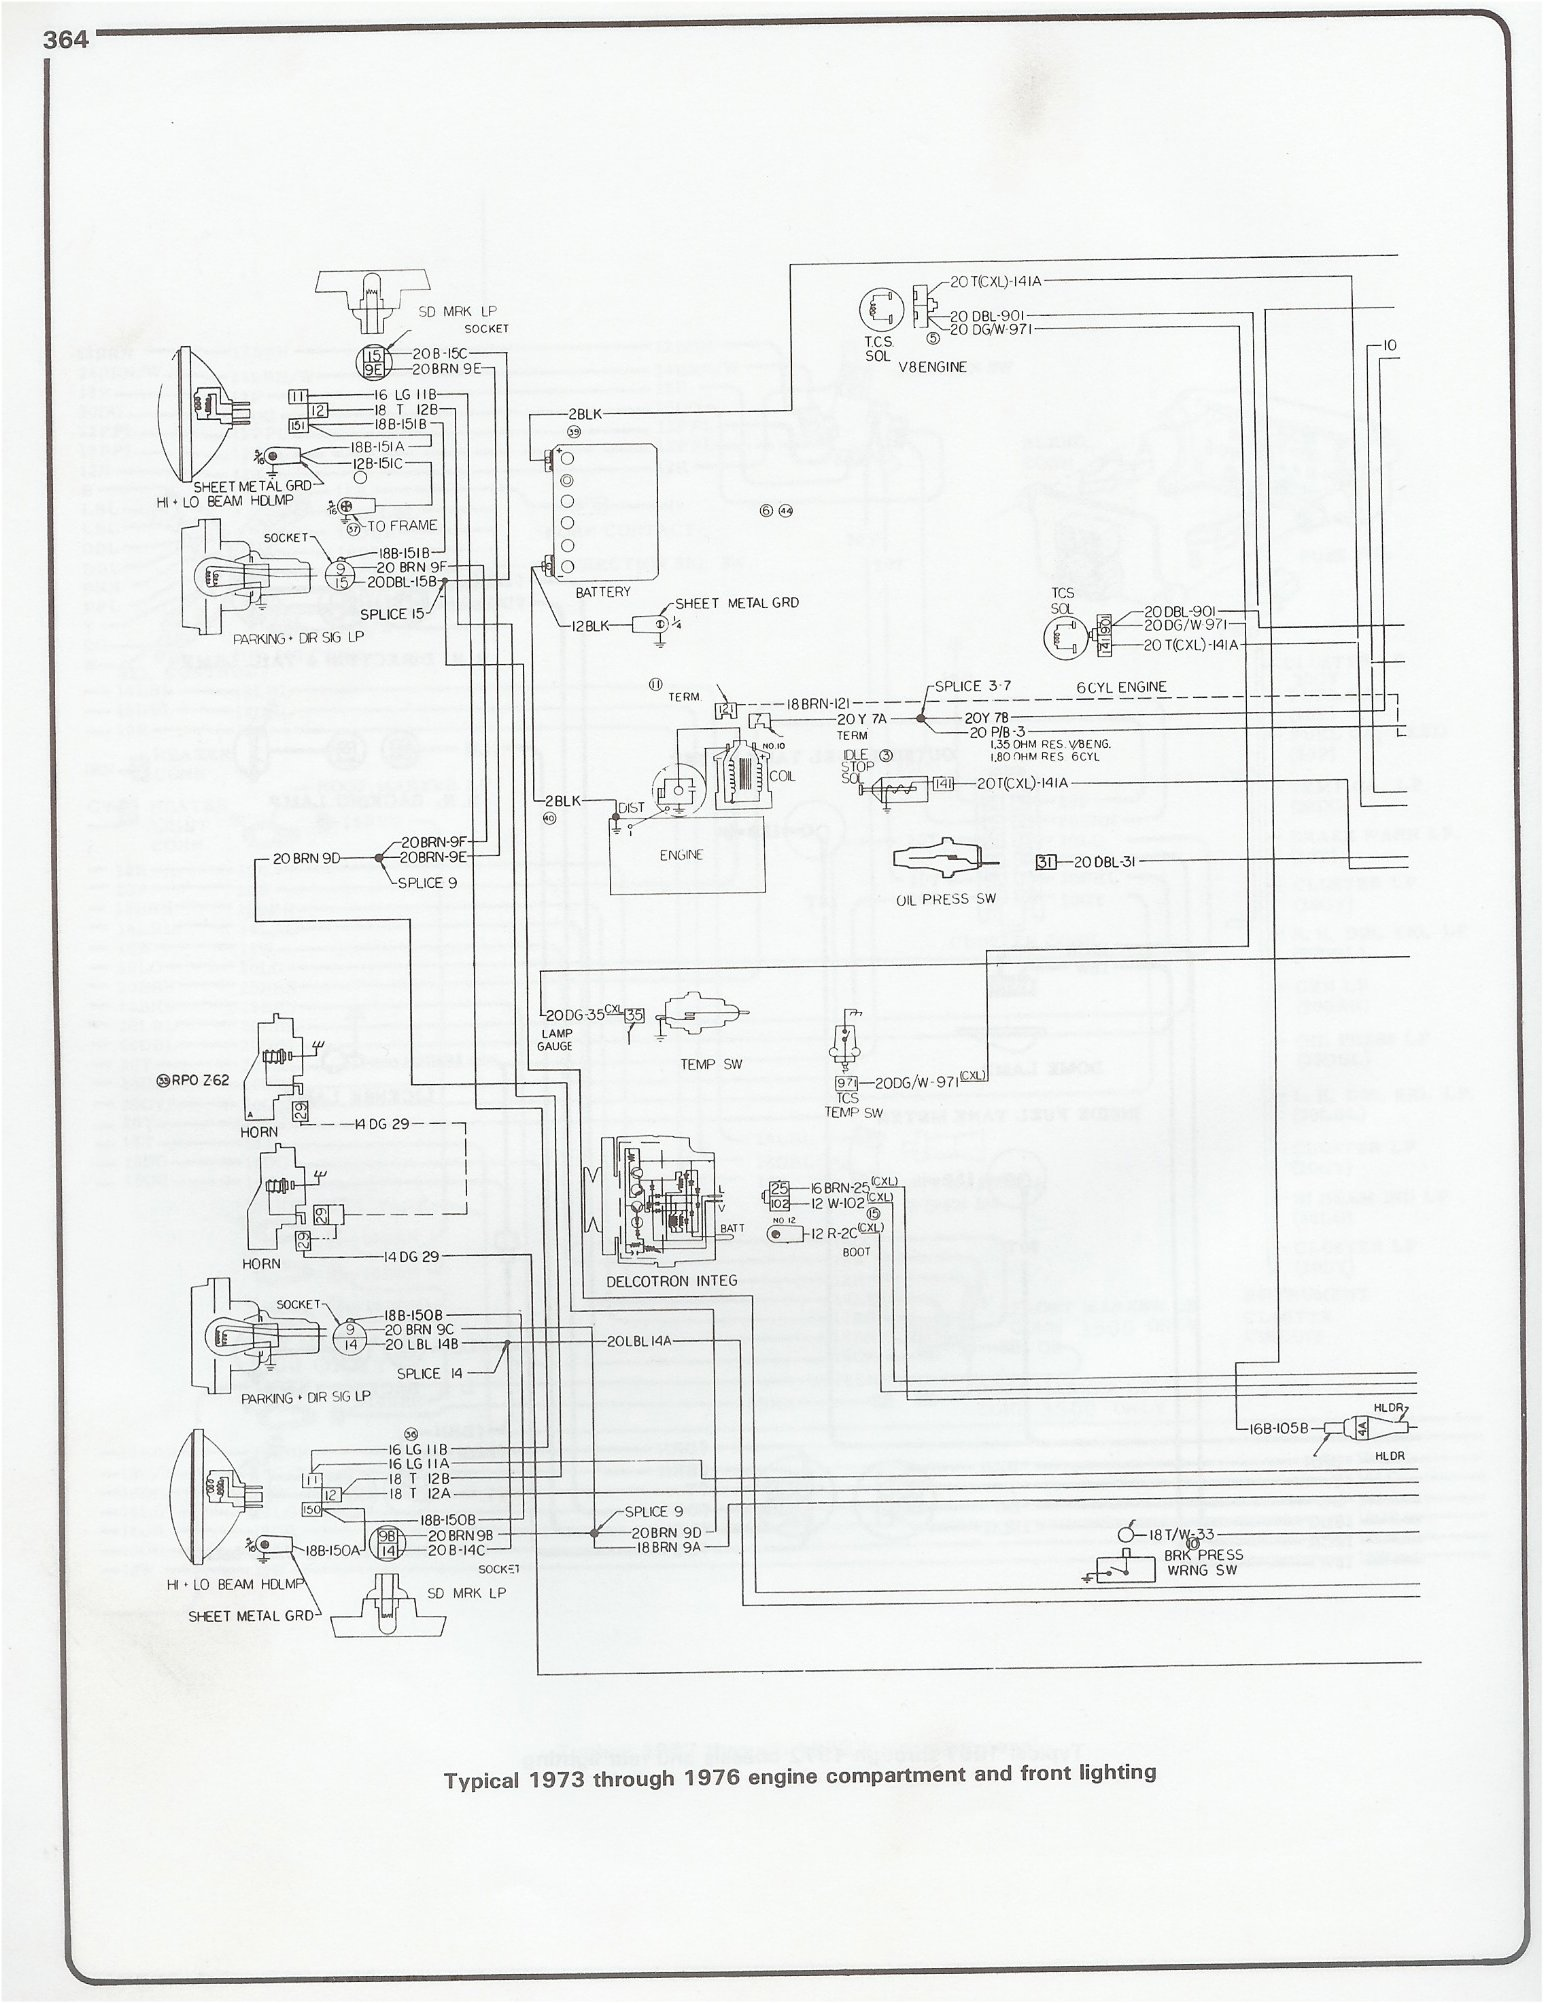 1978 C10 Ignition Wiring Diagram Data 89 Toyota Pickup Complete 73 87 Diagrams Chevy